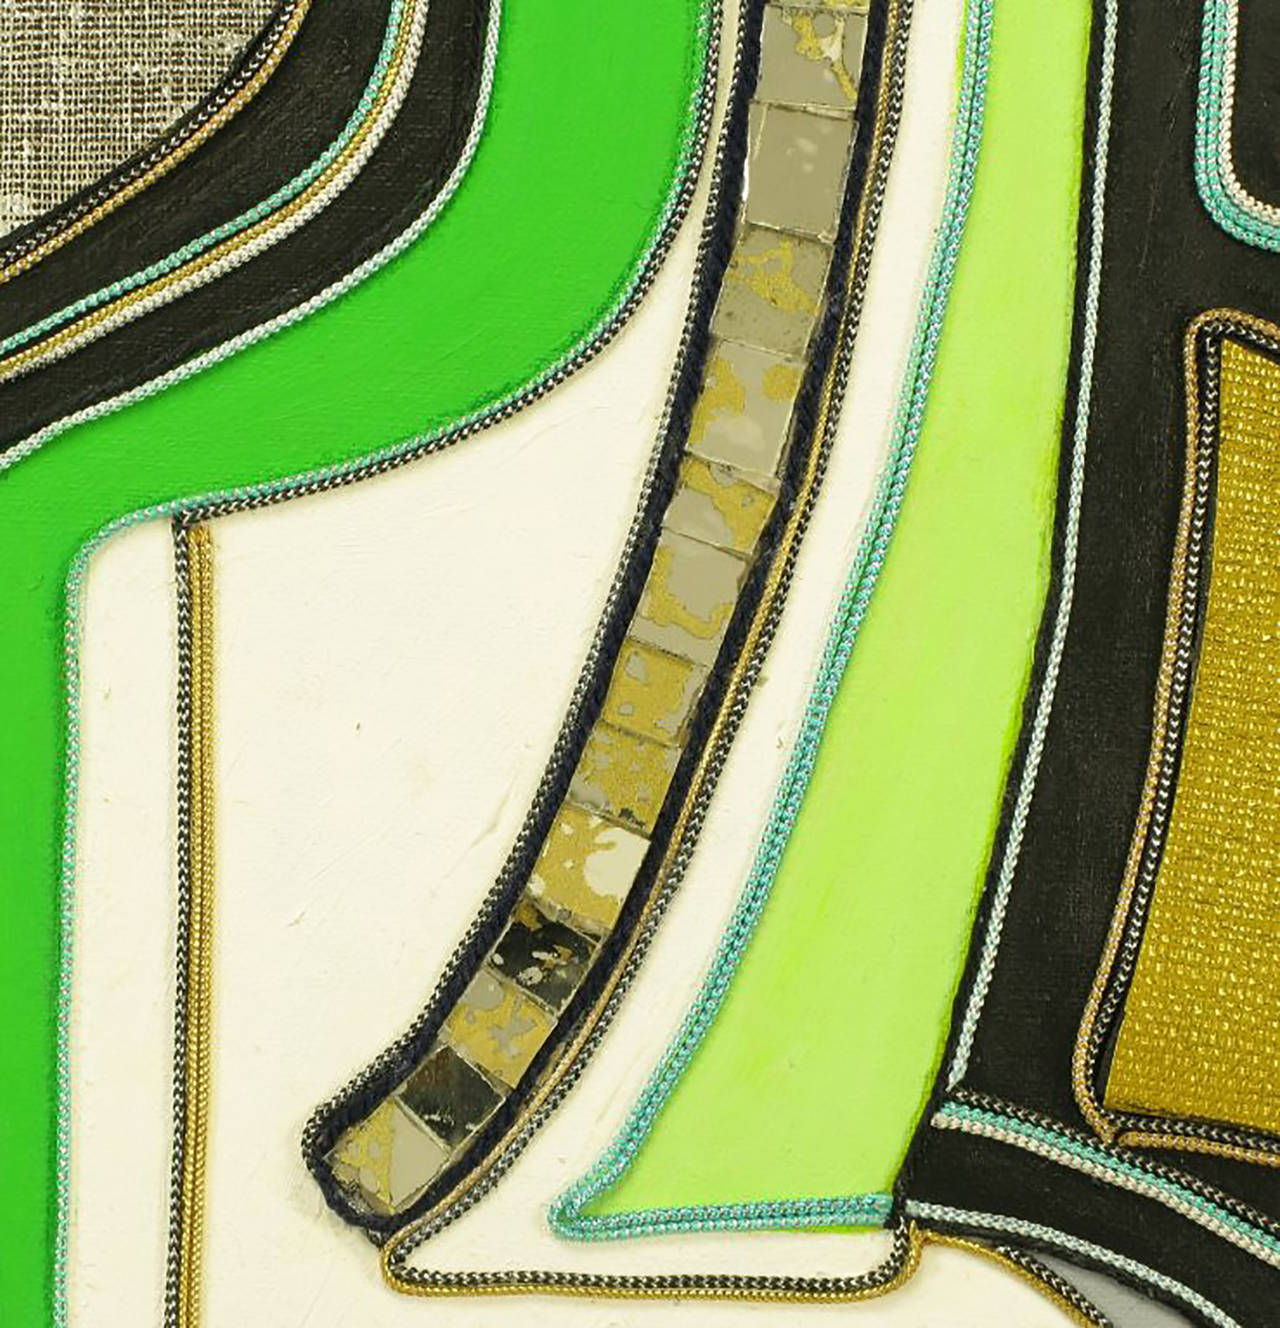 Late 20th Century Green Black and Gold Mixed Media Abstract Painting Signed H. Minnick For Sale